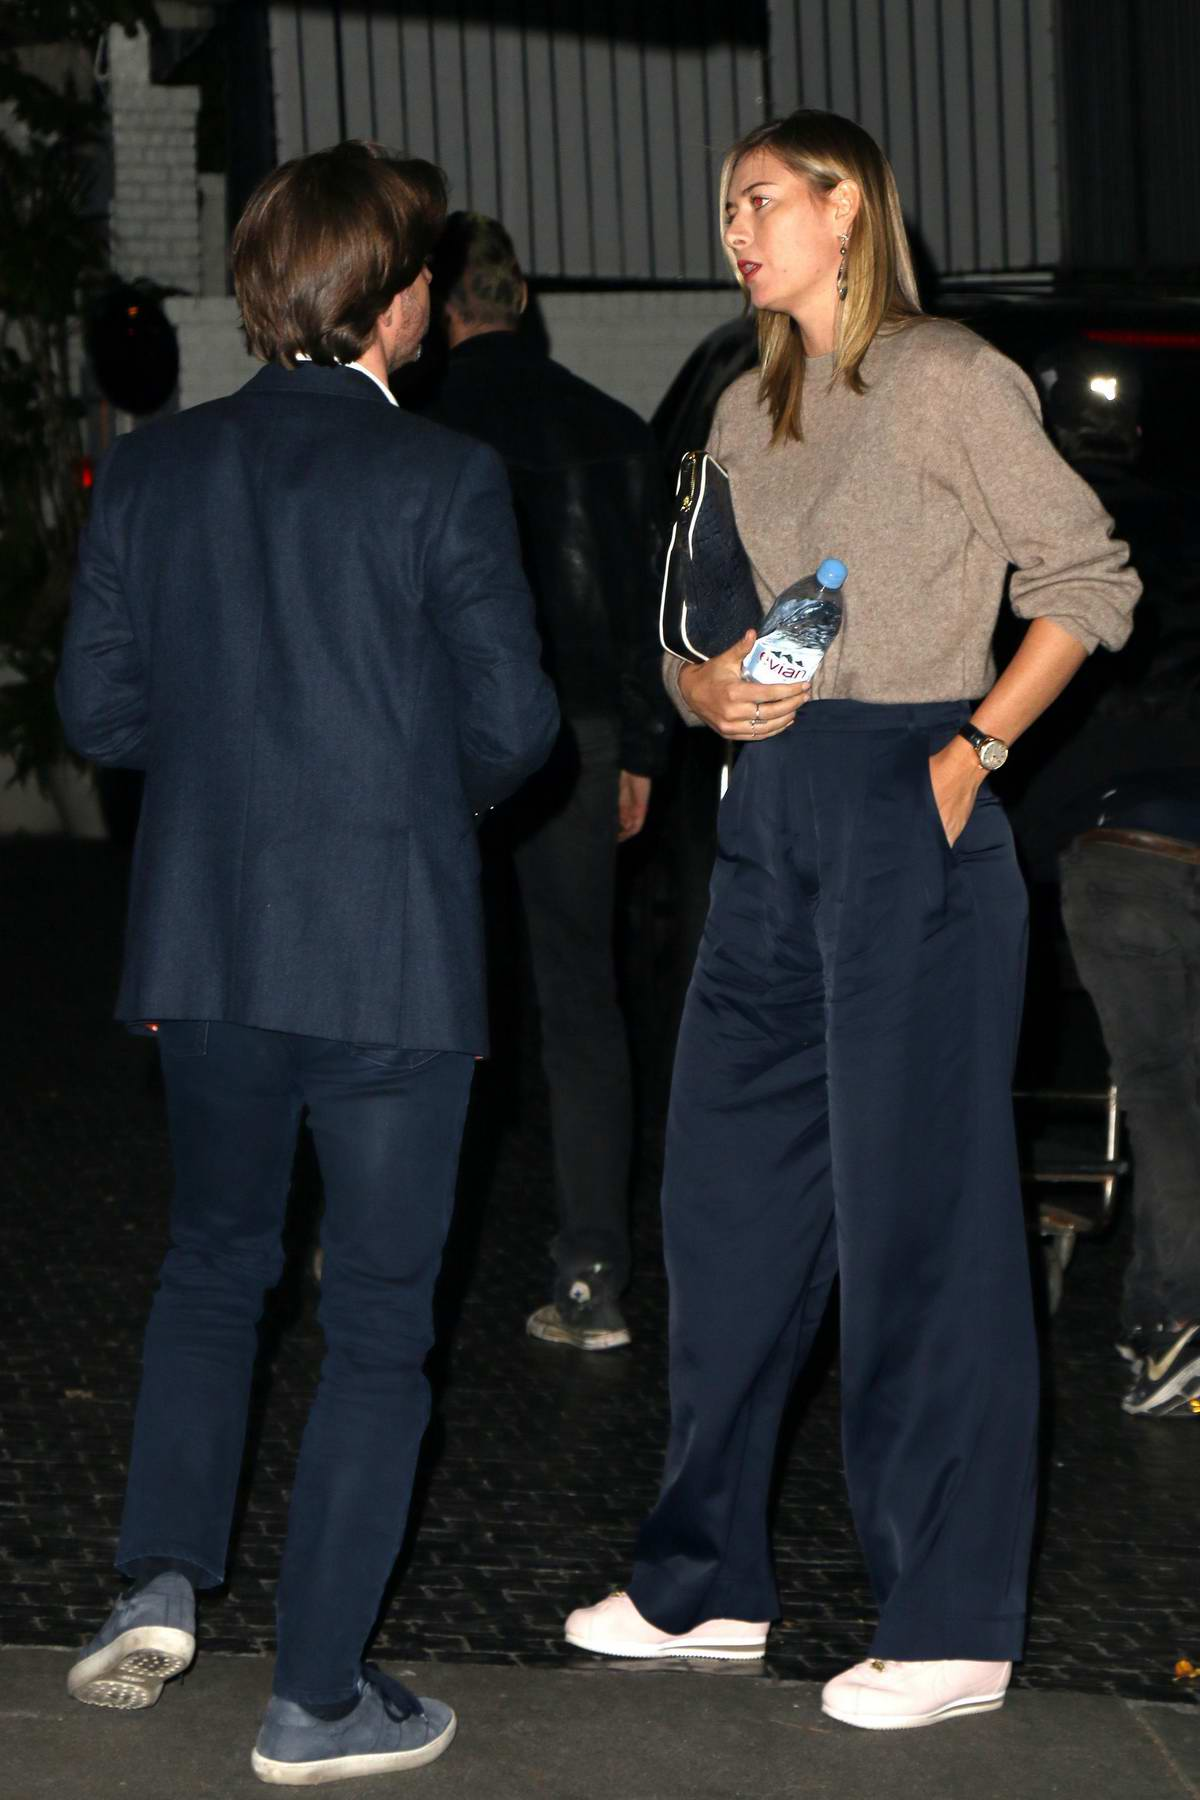 Maria Sharapova spotted with a dinner date at the Chateau Marmont in Los Angeles